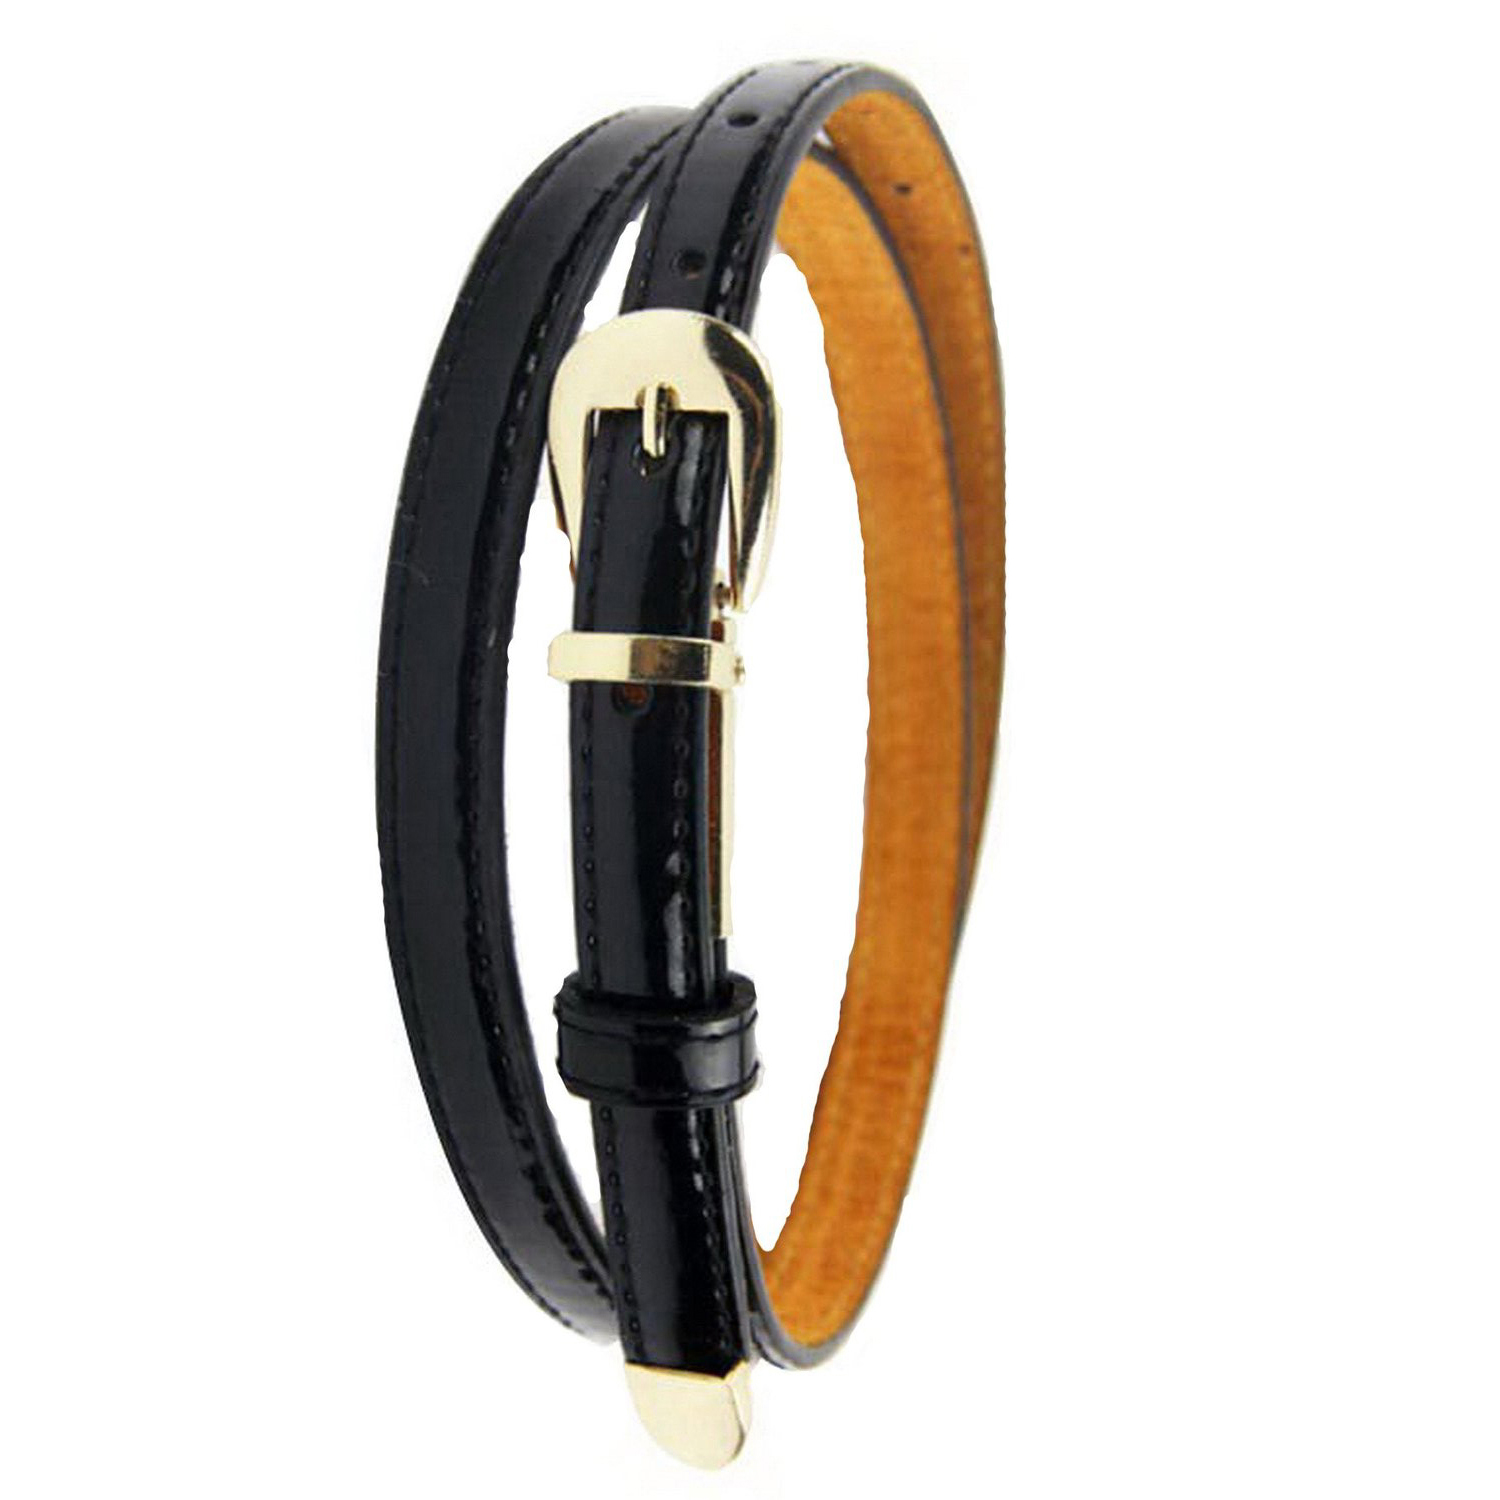 Modern Womens Candy Color Pu Leather Thin Belt Thin Skinny Waistband black light tan coffee pink orange yellow rose red